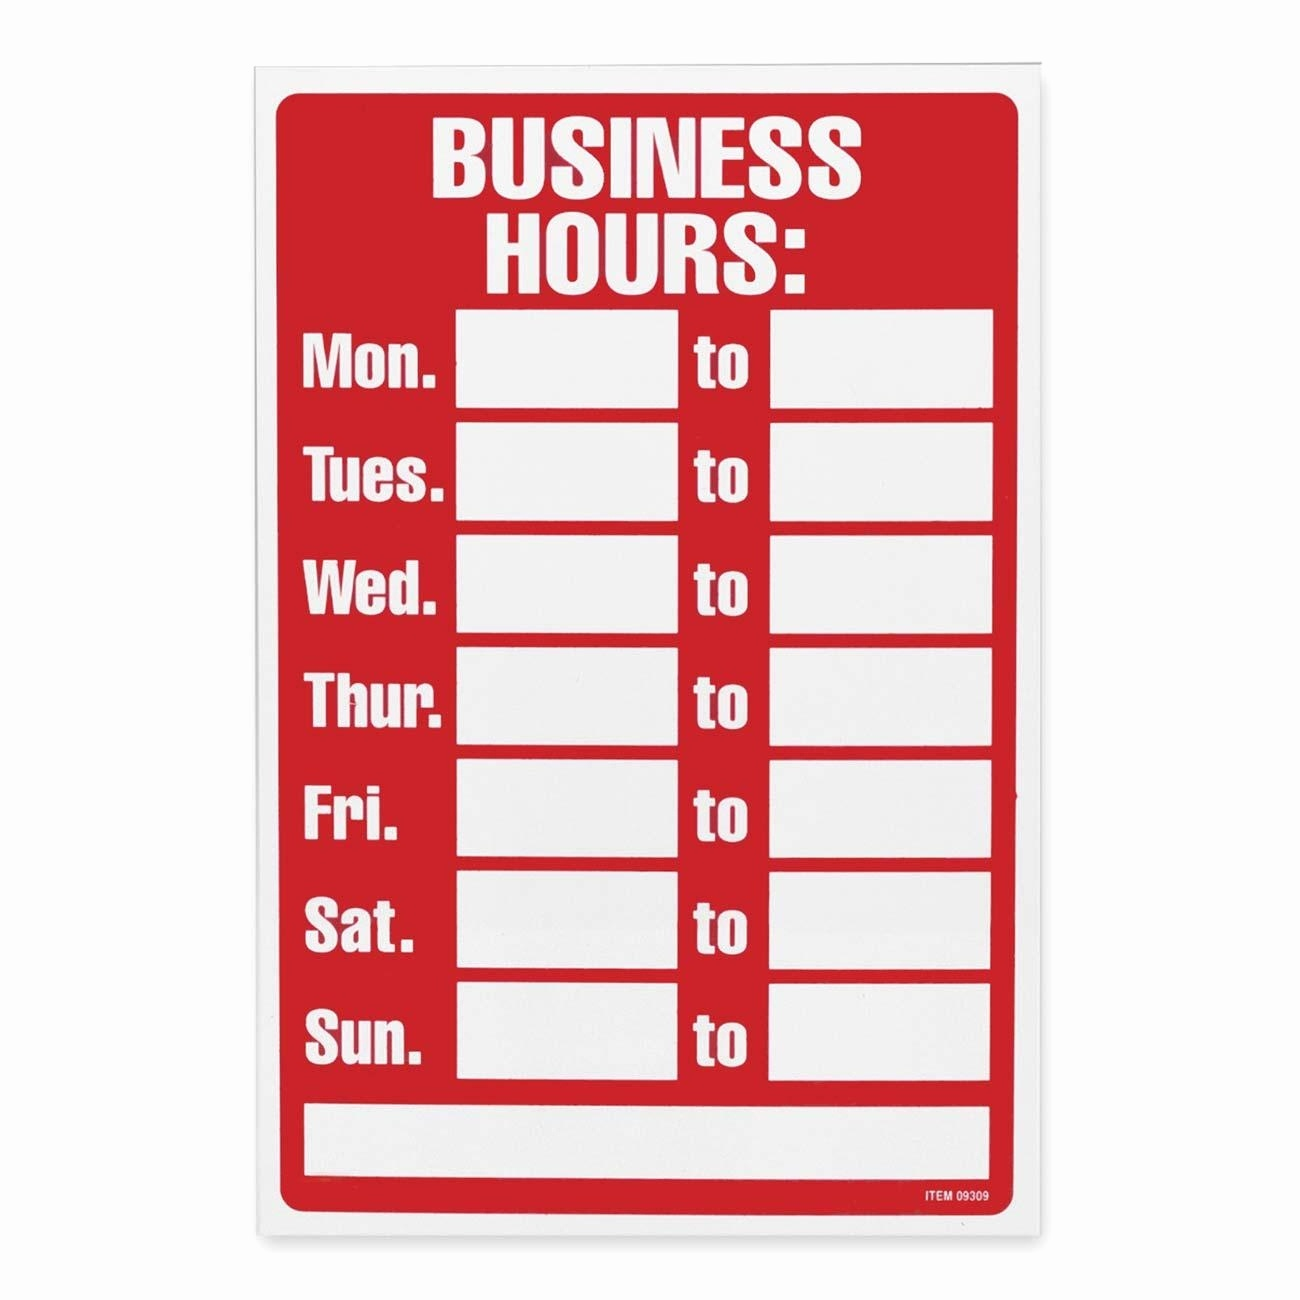 20 Free Printable Business Signs – Guiaubuntupt - Free Printable Business Hours Sign